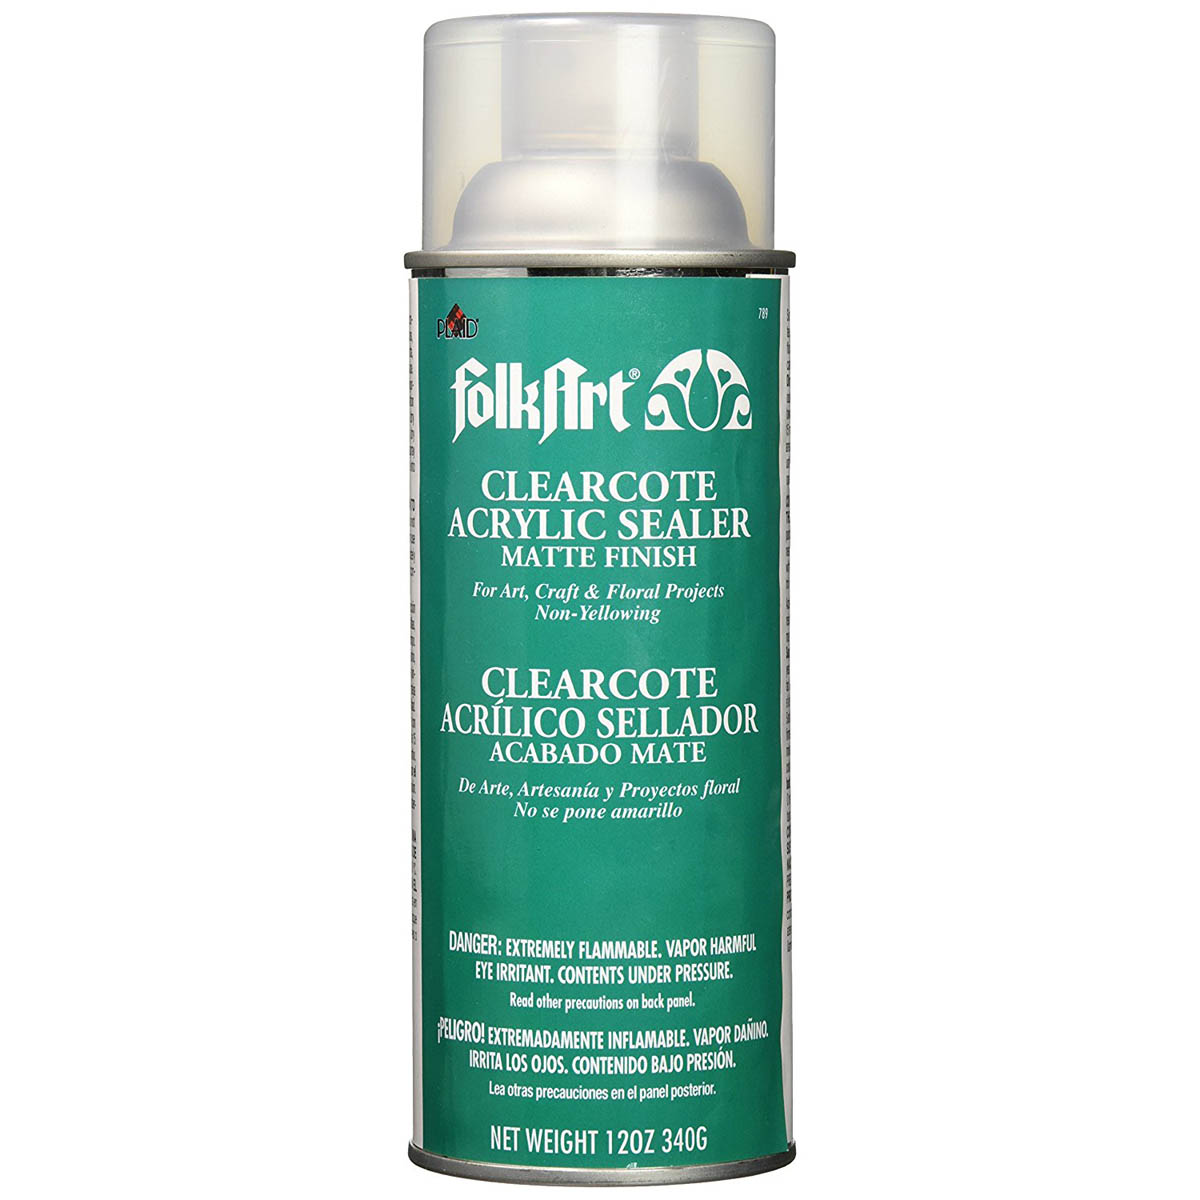 FolkArt ® Finishes - Clearcote™ Aerosol Acrylic Sealer - Matte, 12 oz.